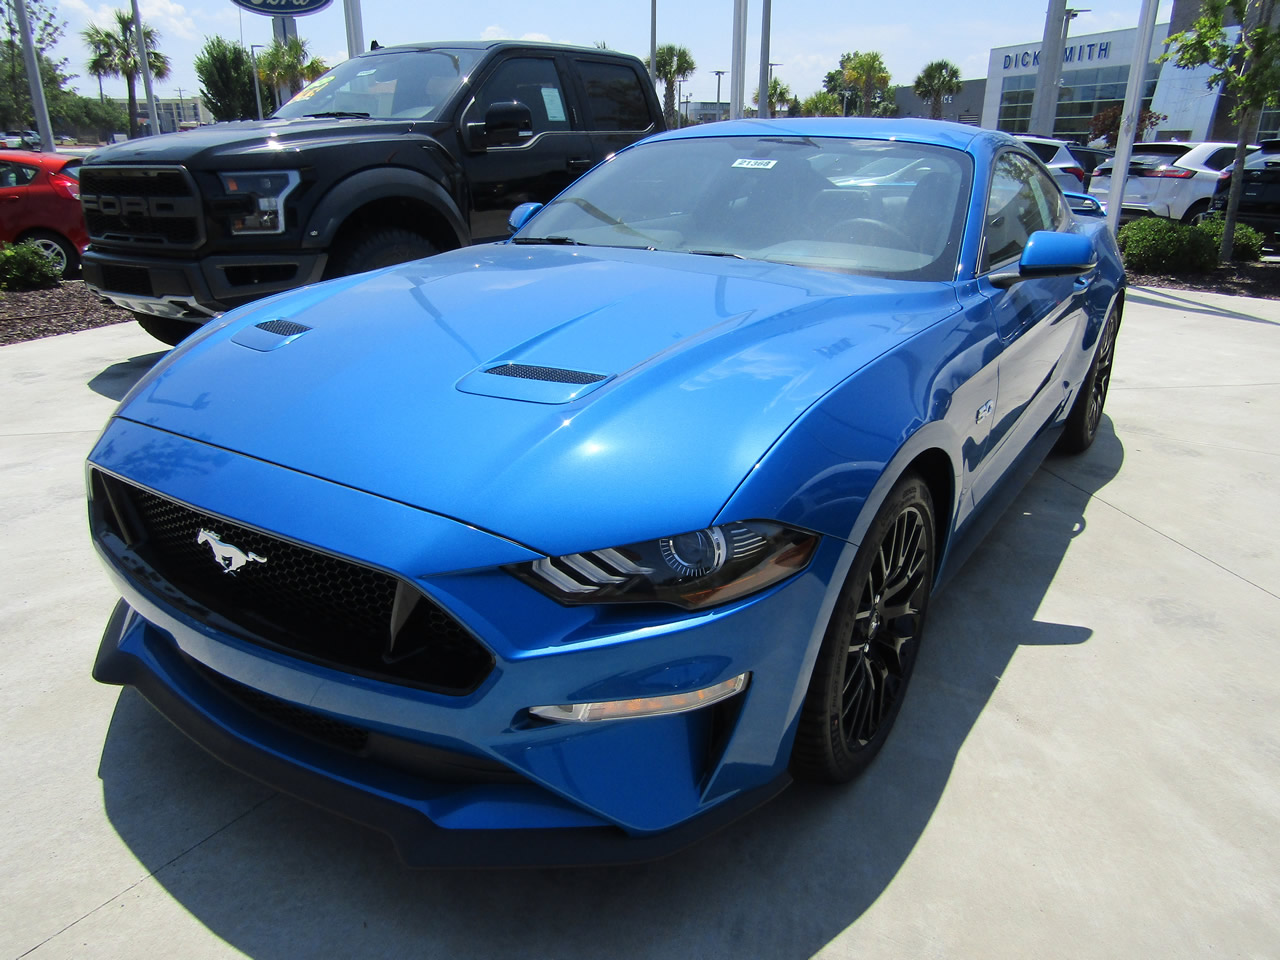 d5eb3f076 NEW 2019 FORD MUSTANG GT PREMIUM VIN 1FA6P8CF8K5166279 - DICK SMITH ...